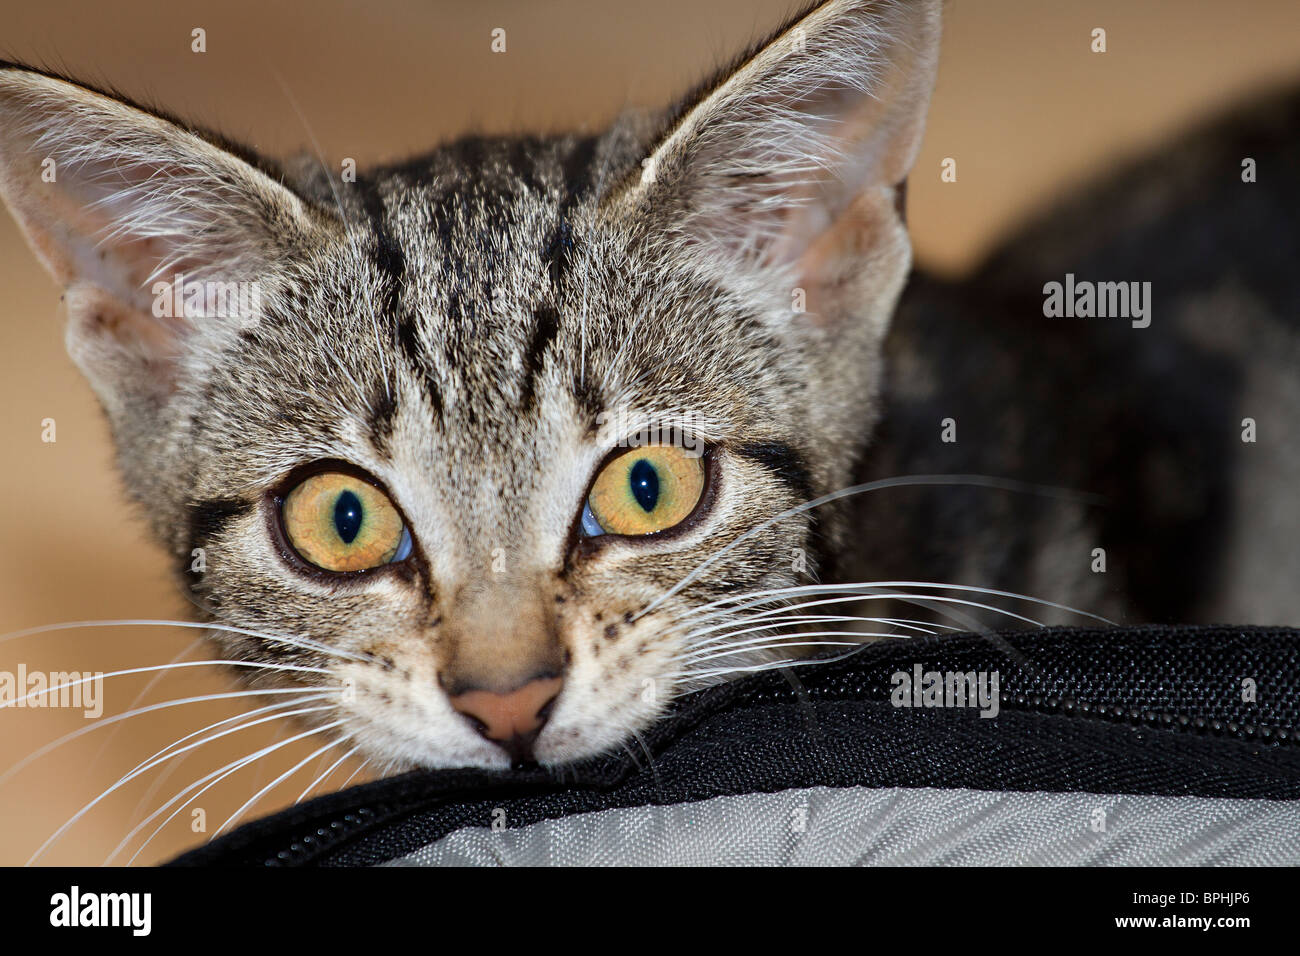 Cute but naughty Mackerel Tabby kitten biting a bag with a defiant facial expression. Stock Photo